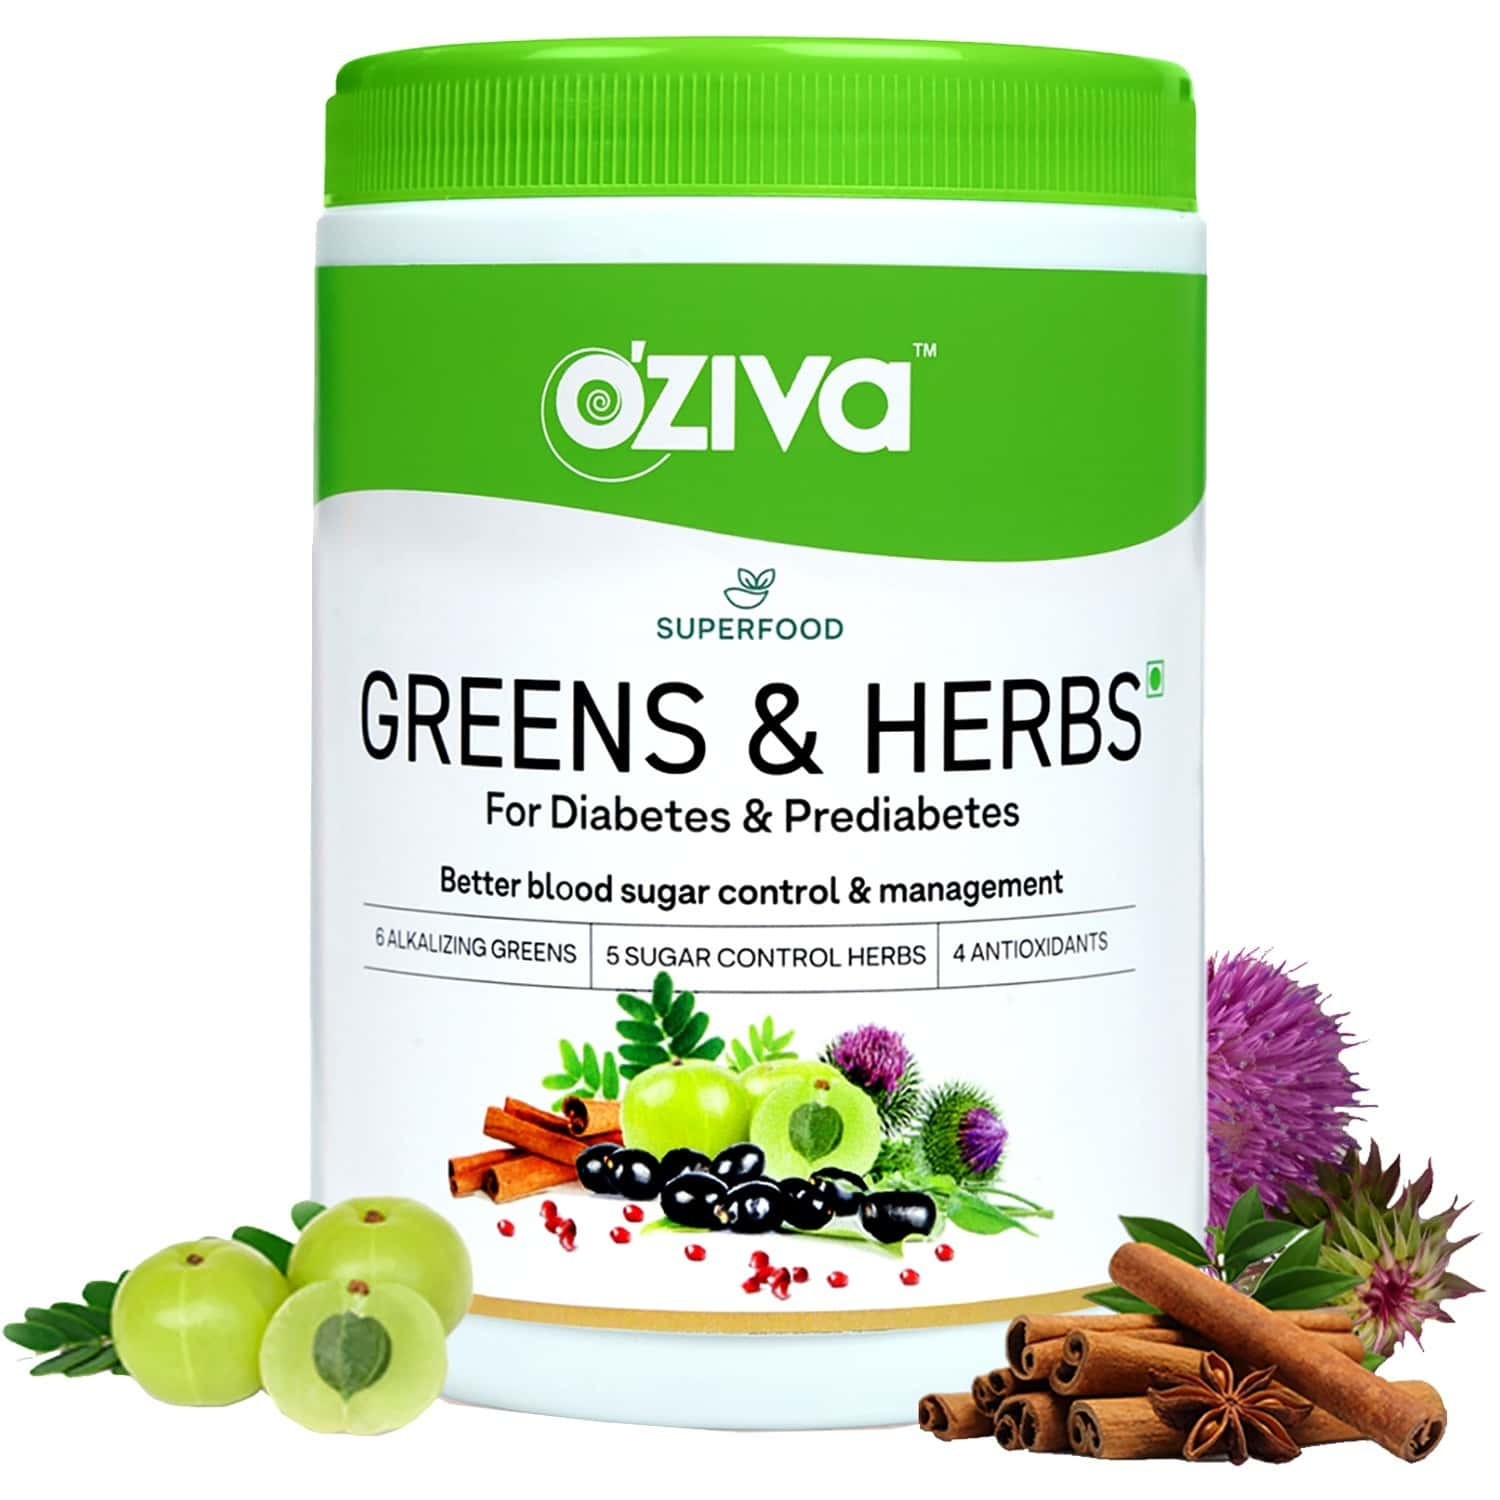 Oziva Superfood Greens & Herbs For Diabetes & Prediabetes (with Gymnema, Fenugreek, Milk Thistle Extract) - 250 Gm